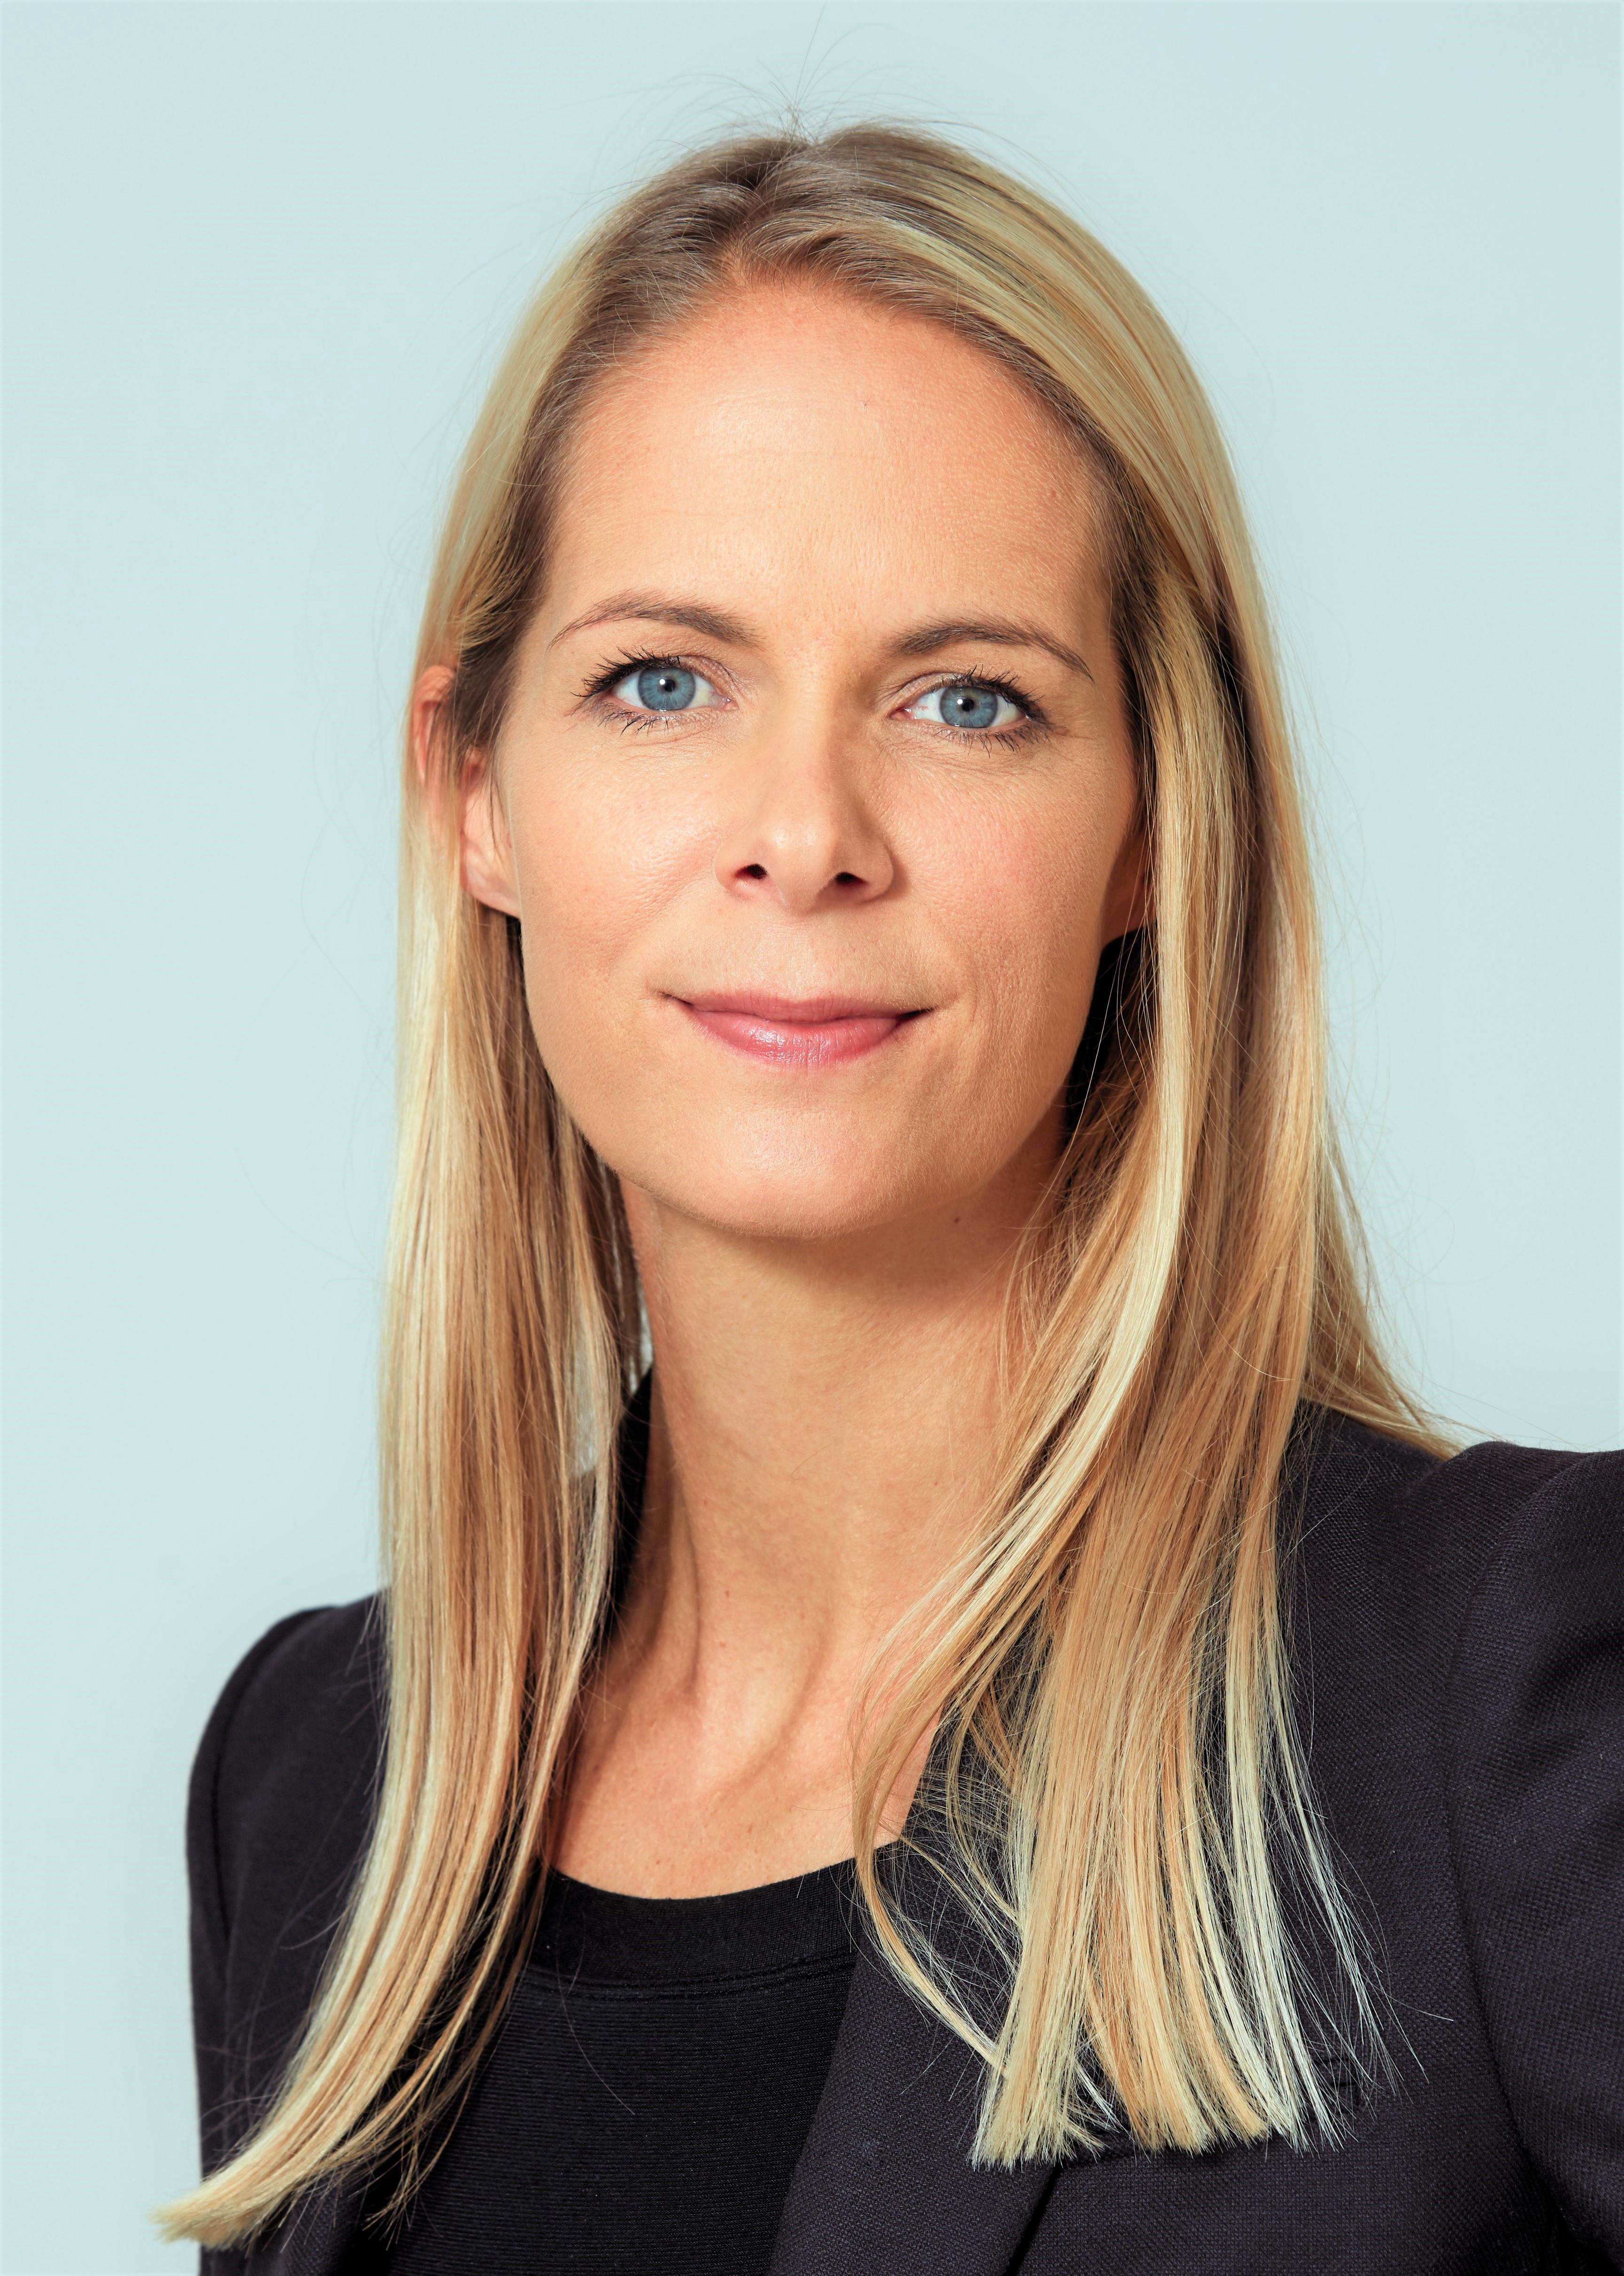 Image of Cathrine Thorleifsson